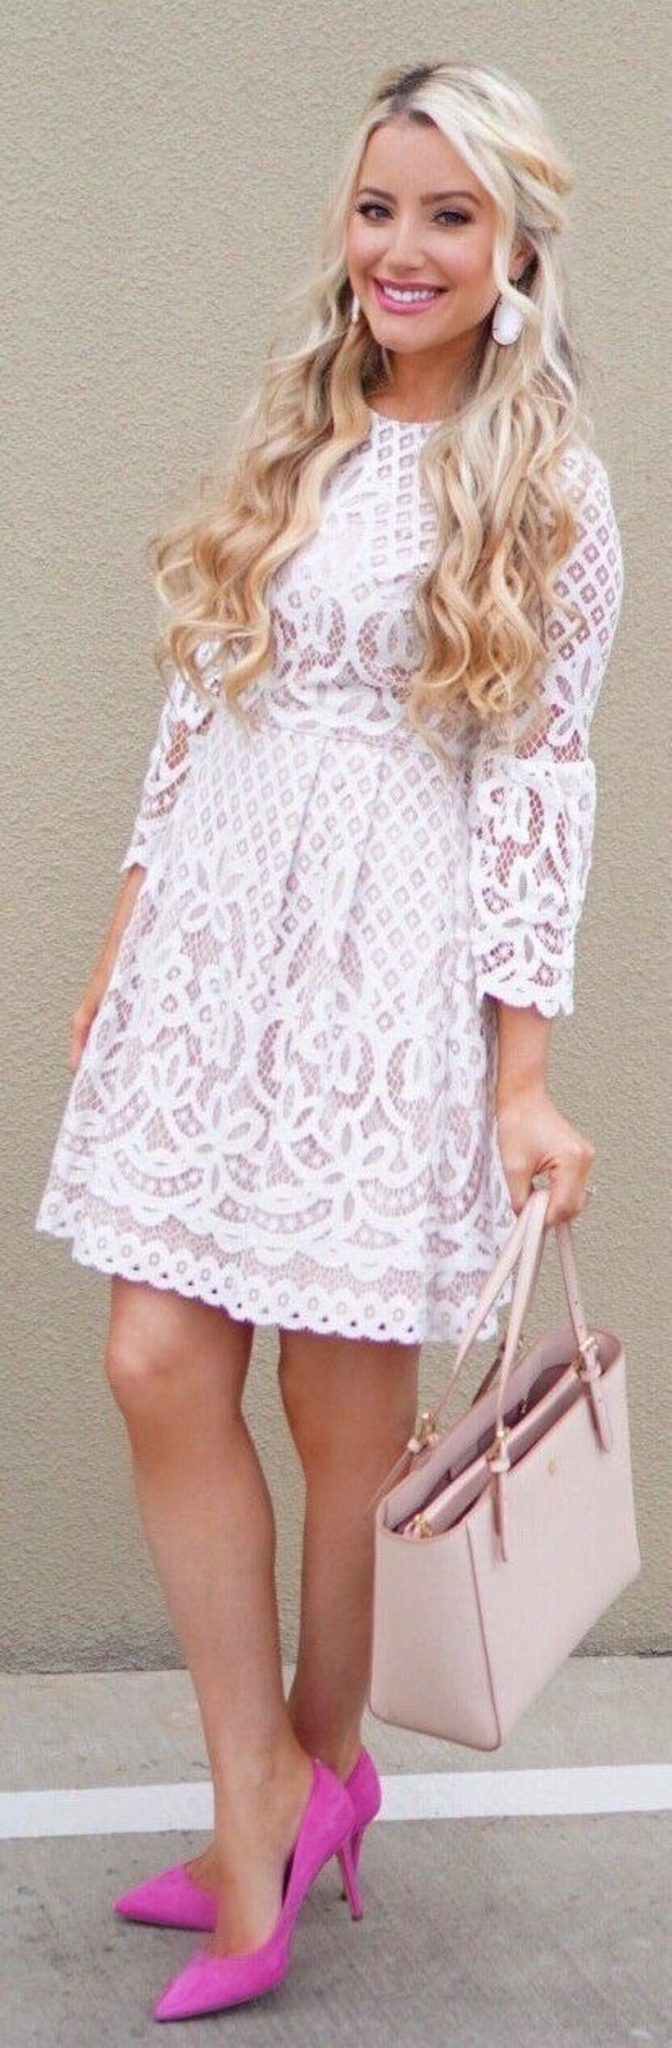 Most cute short white dresses outfits design ideas 38